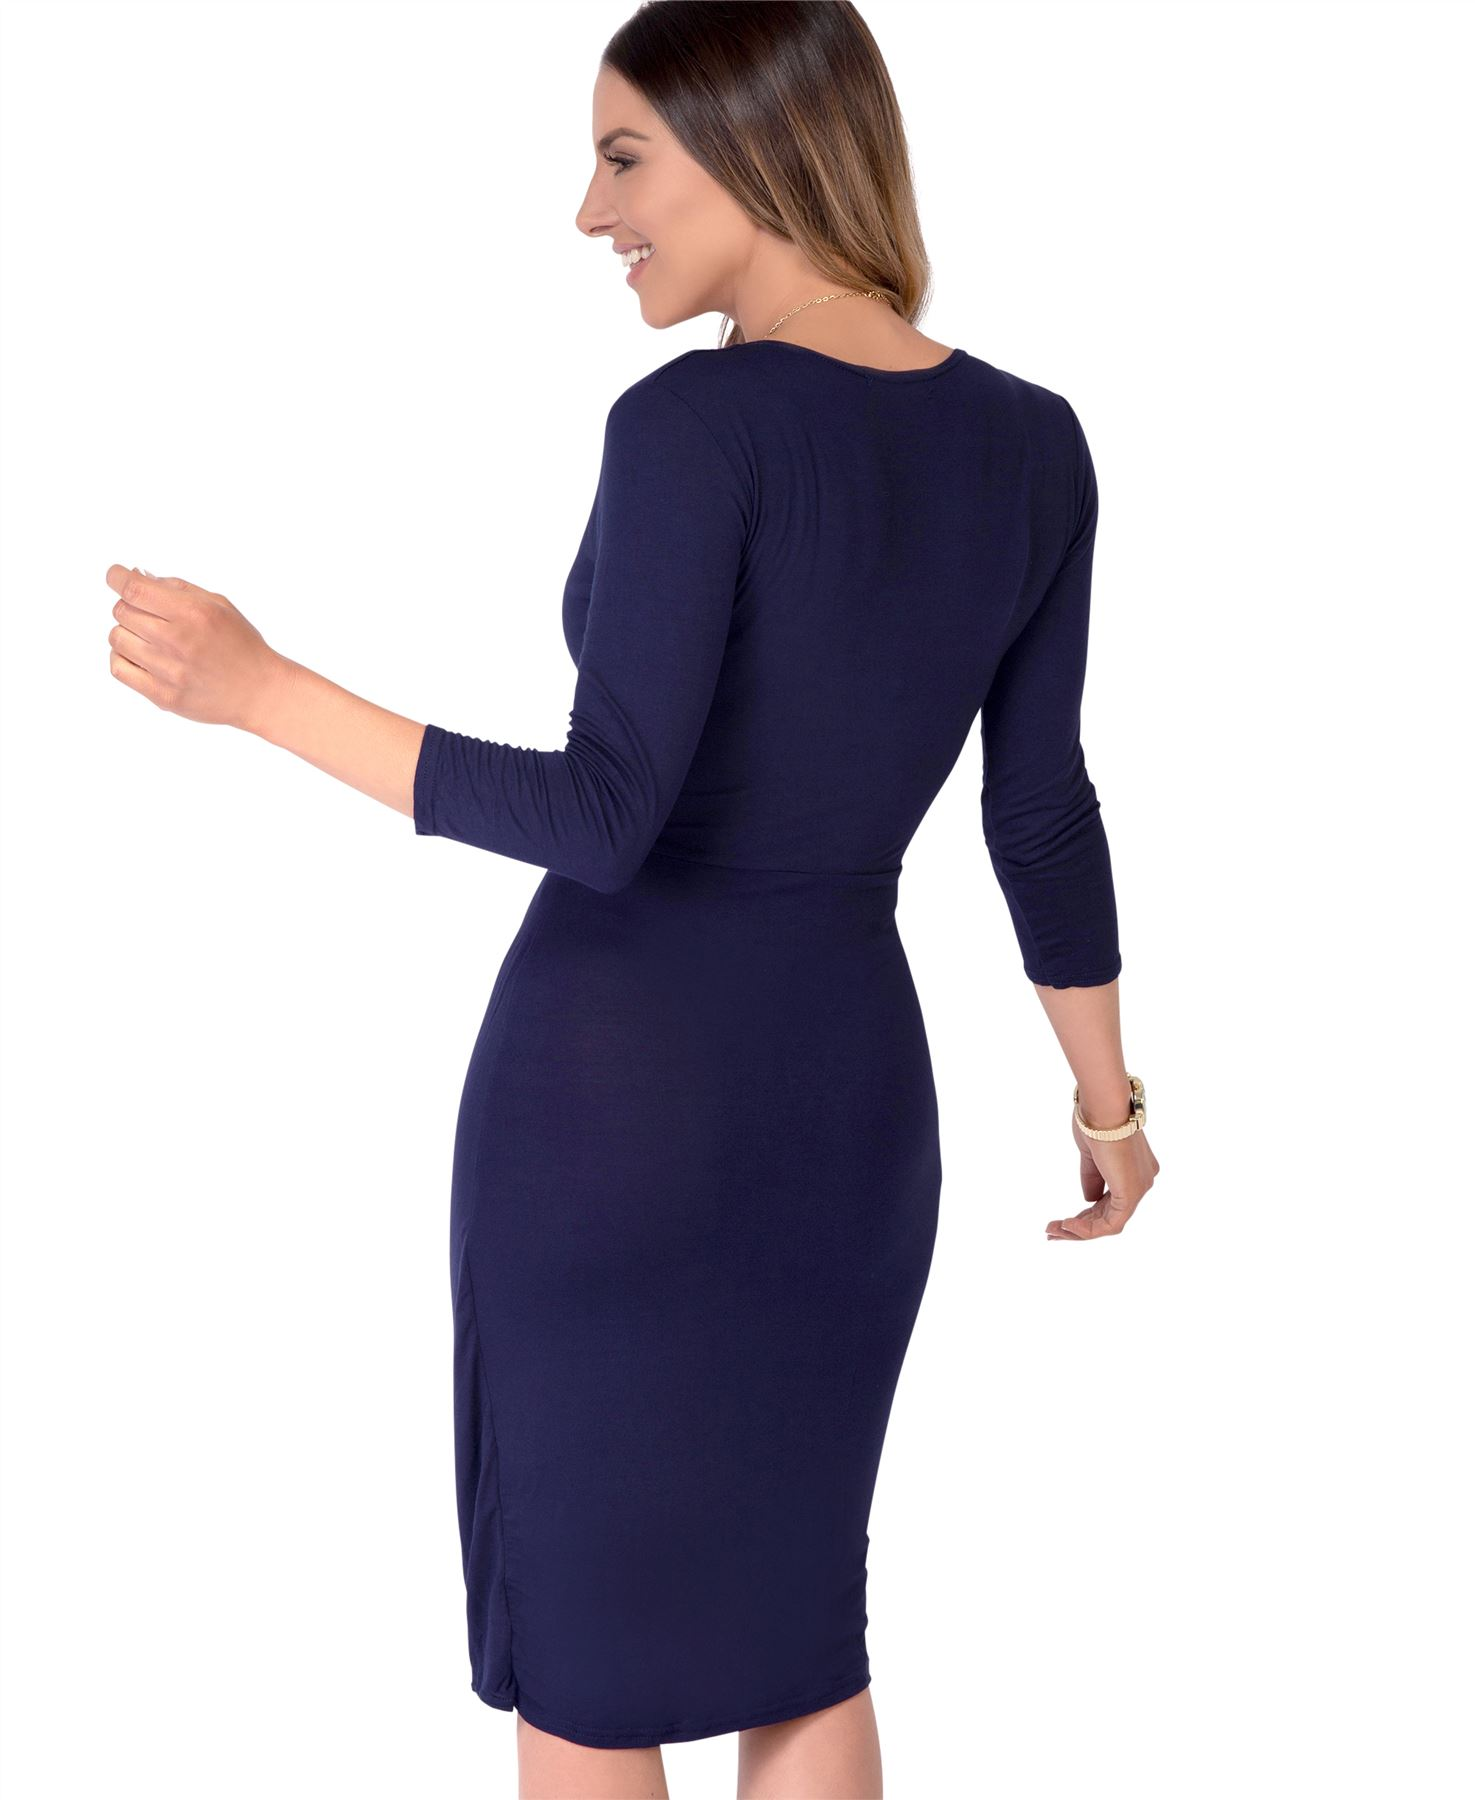 Womens-Ladies-Shift-Wrap-Dress-Midi-Knee-Long-Quarter-Sleeve-Sexy-Solid-Party thumbnail 19